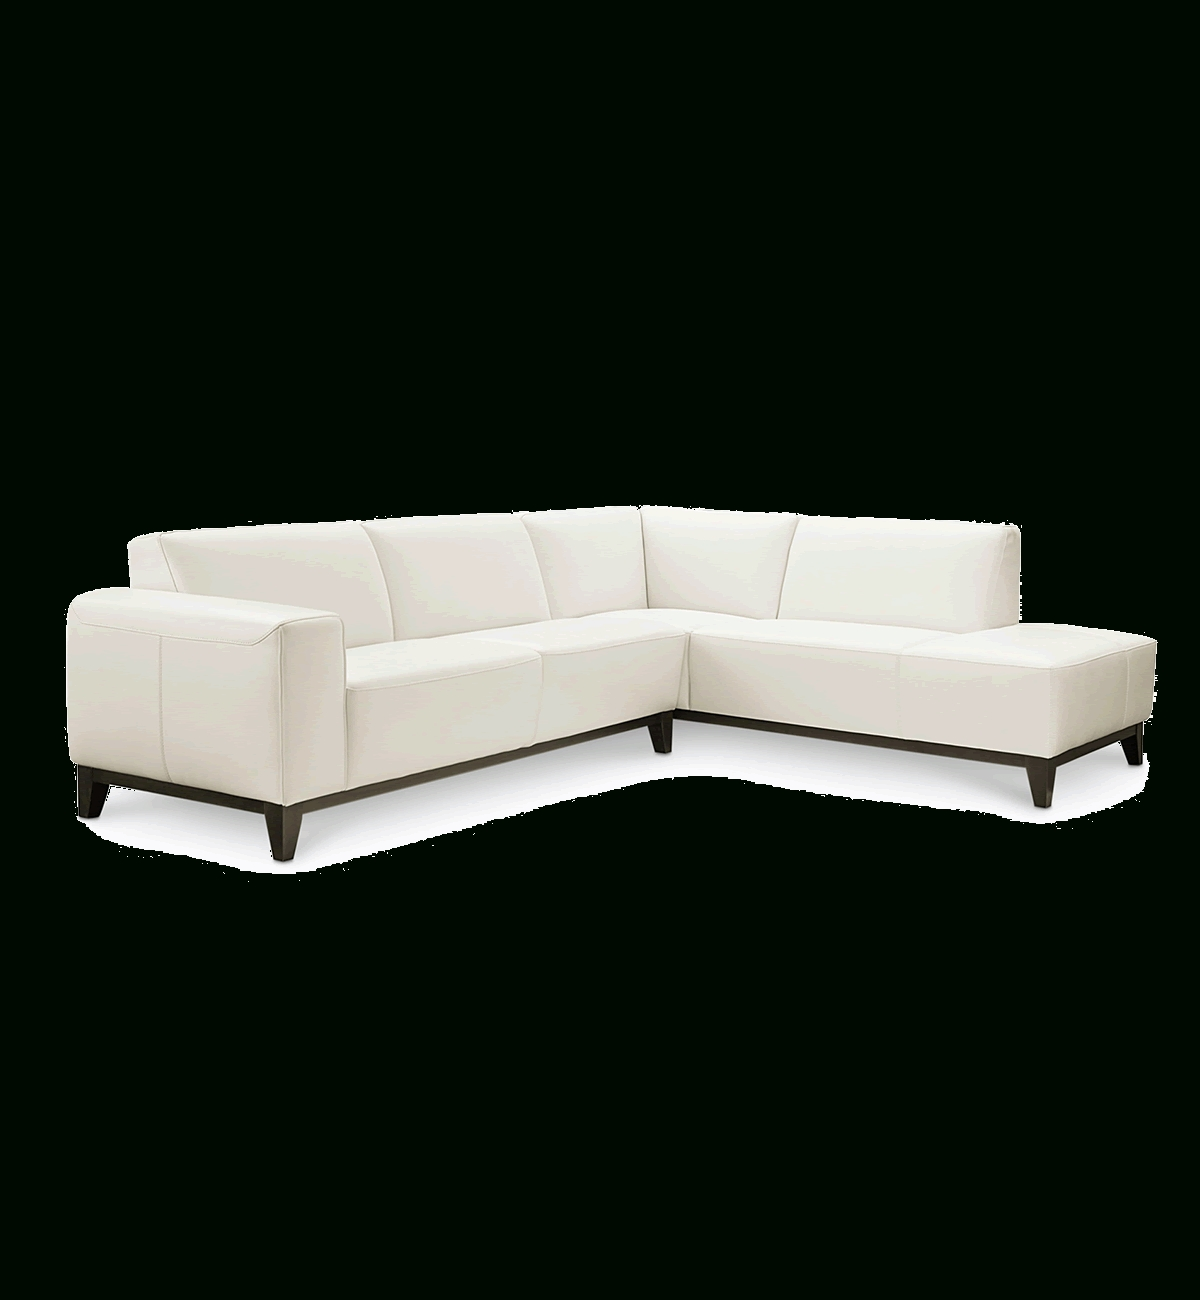 Most Current Leather Couches And Sofas – Macy's For Macys Leather Sofas (View 13 of 20)